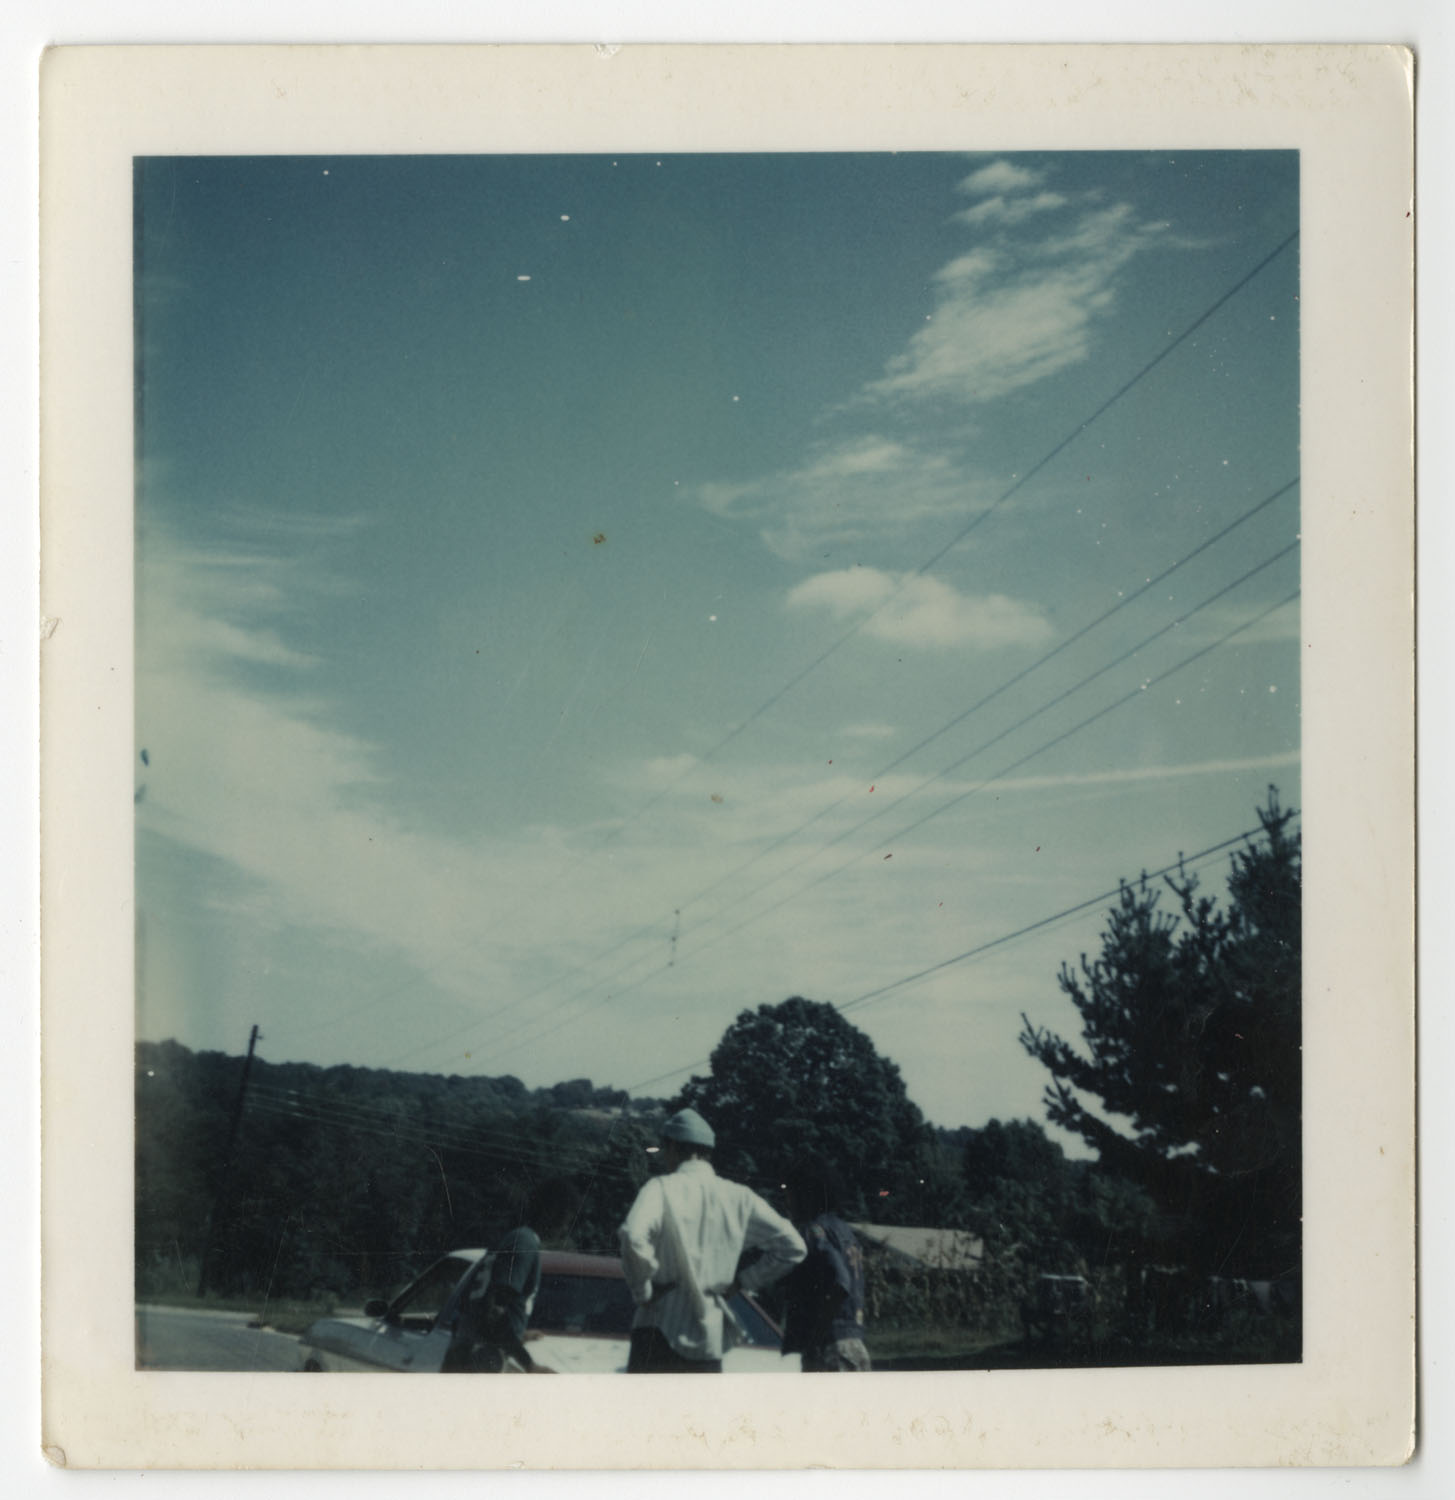 Man Standing by Cumberland Mountain, Tennessee